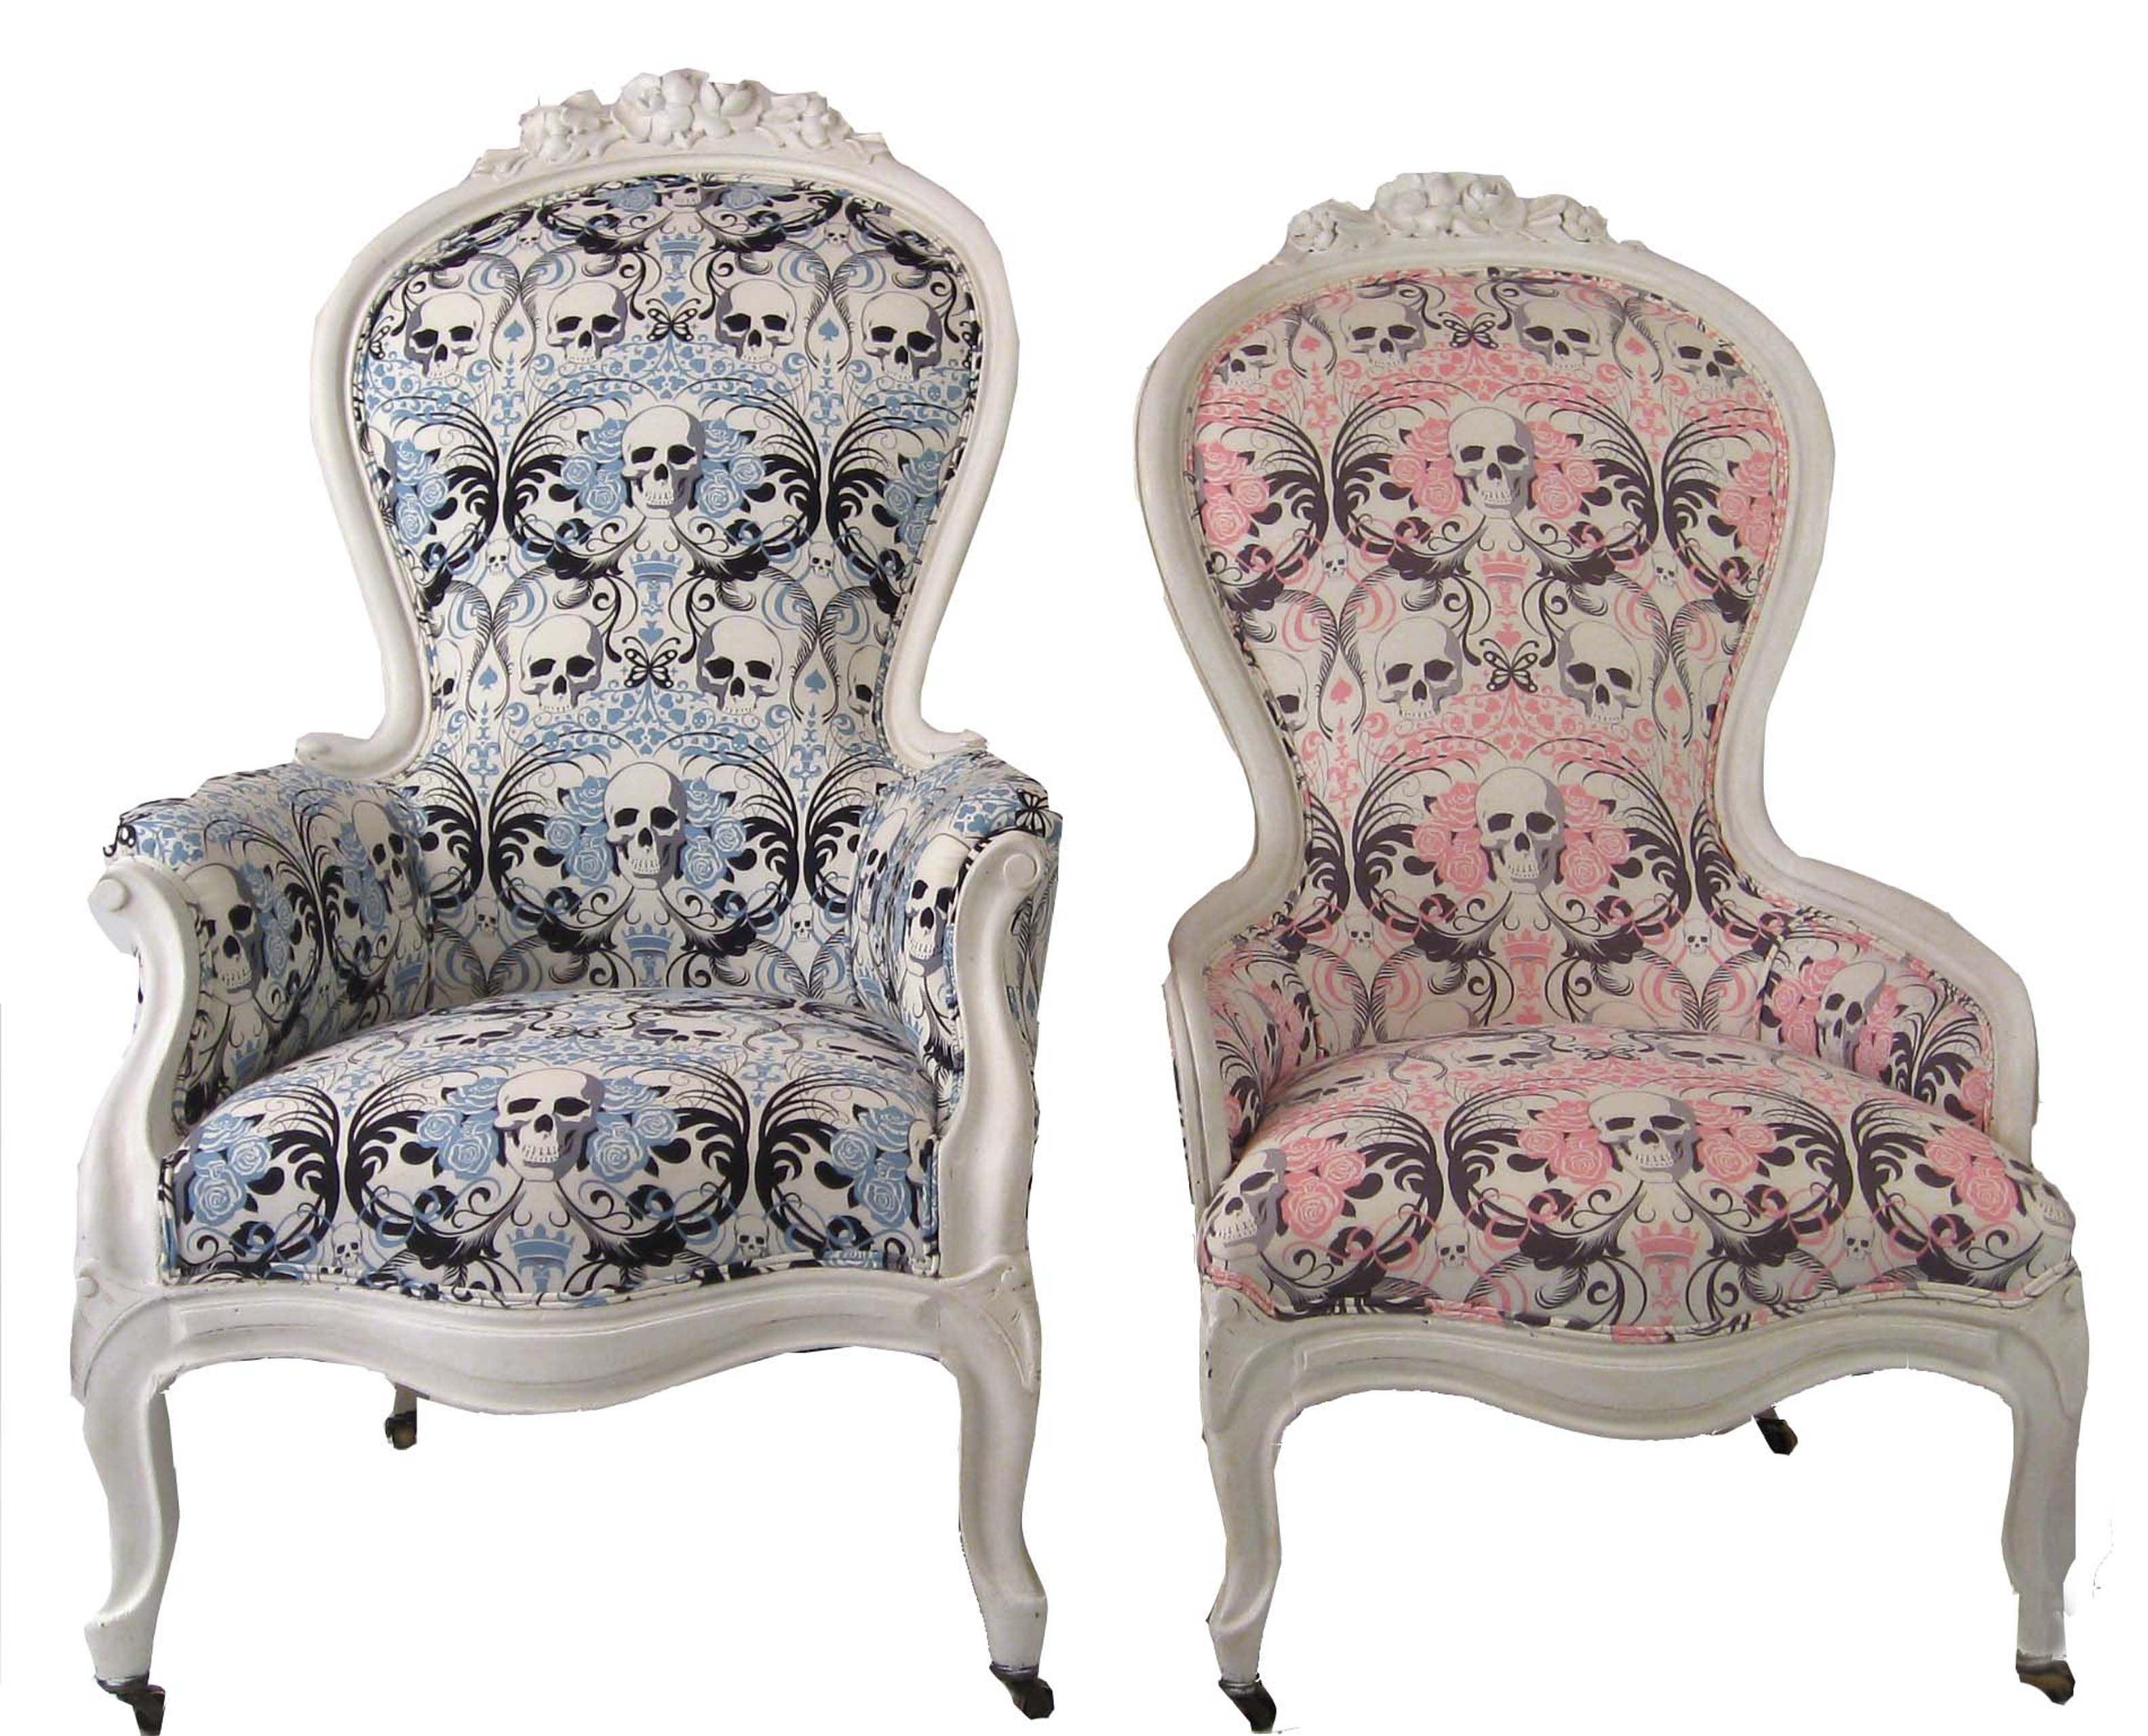 King chair with king - Image Of King Queen Victorian Skull Chairs A Pair